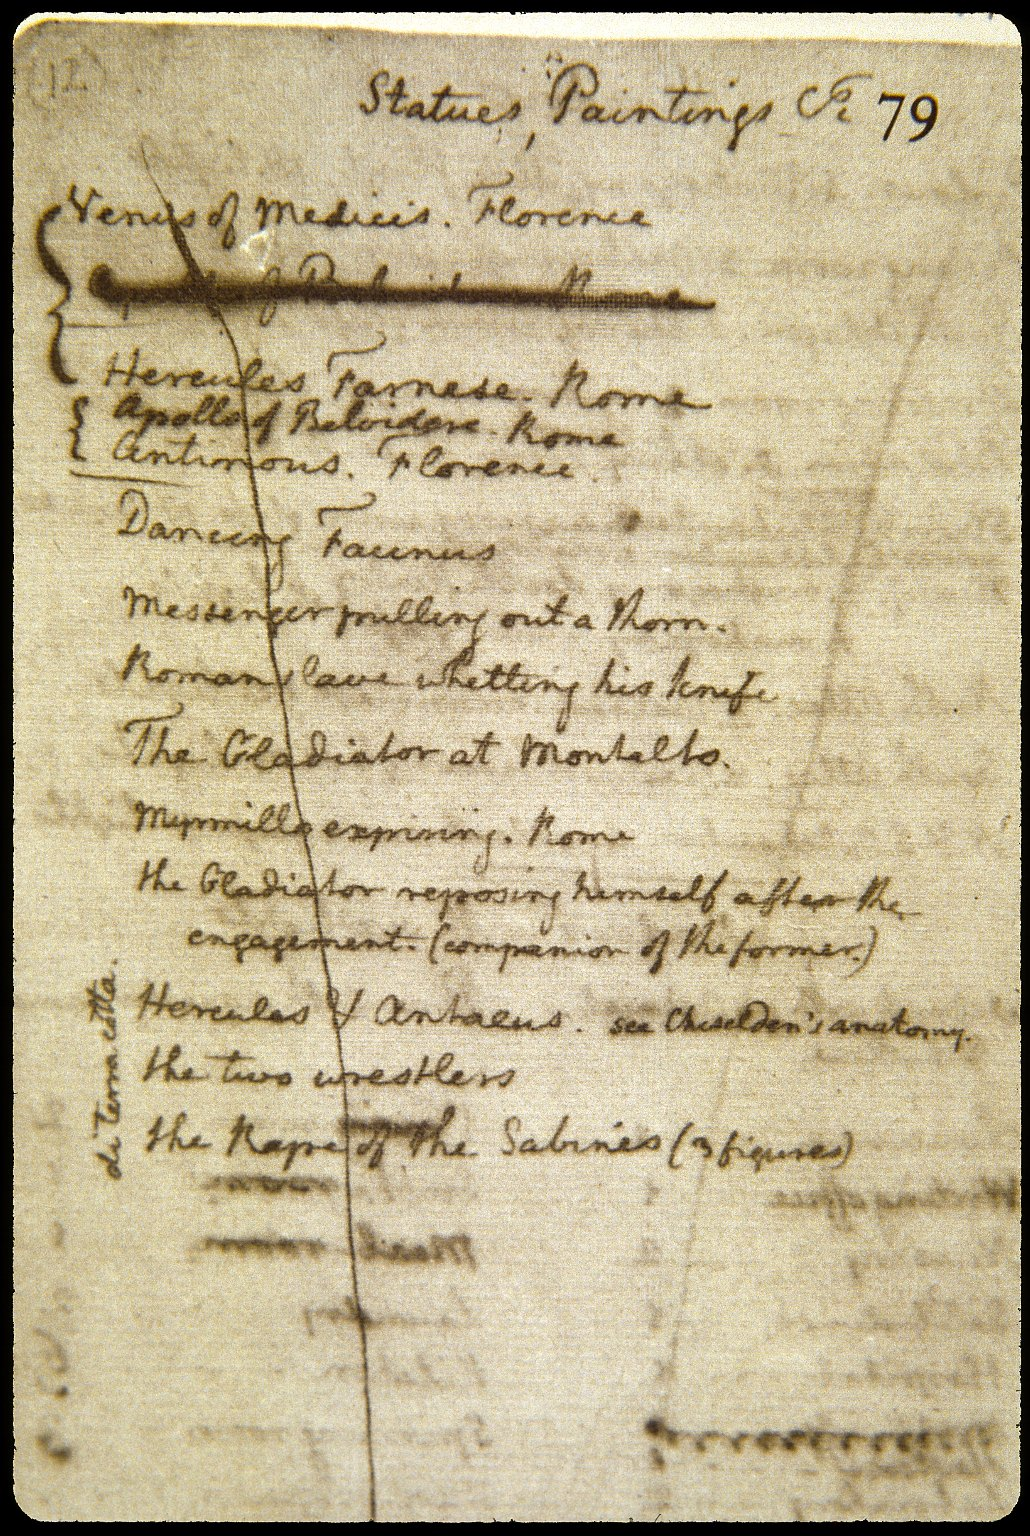 Monticello, building notebook, page 12 of 52